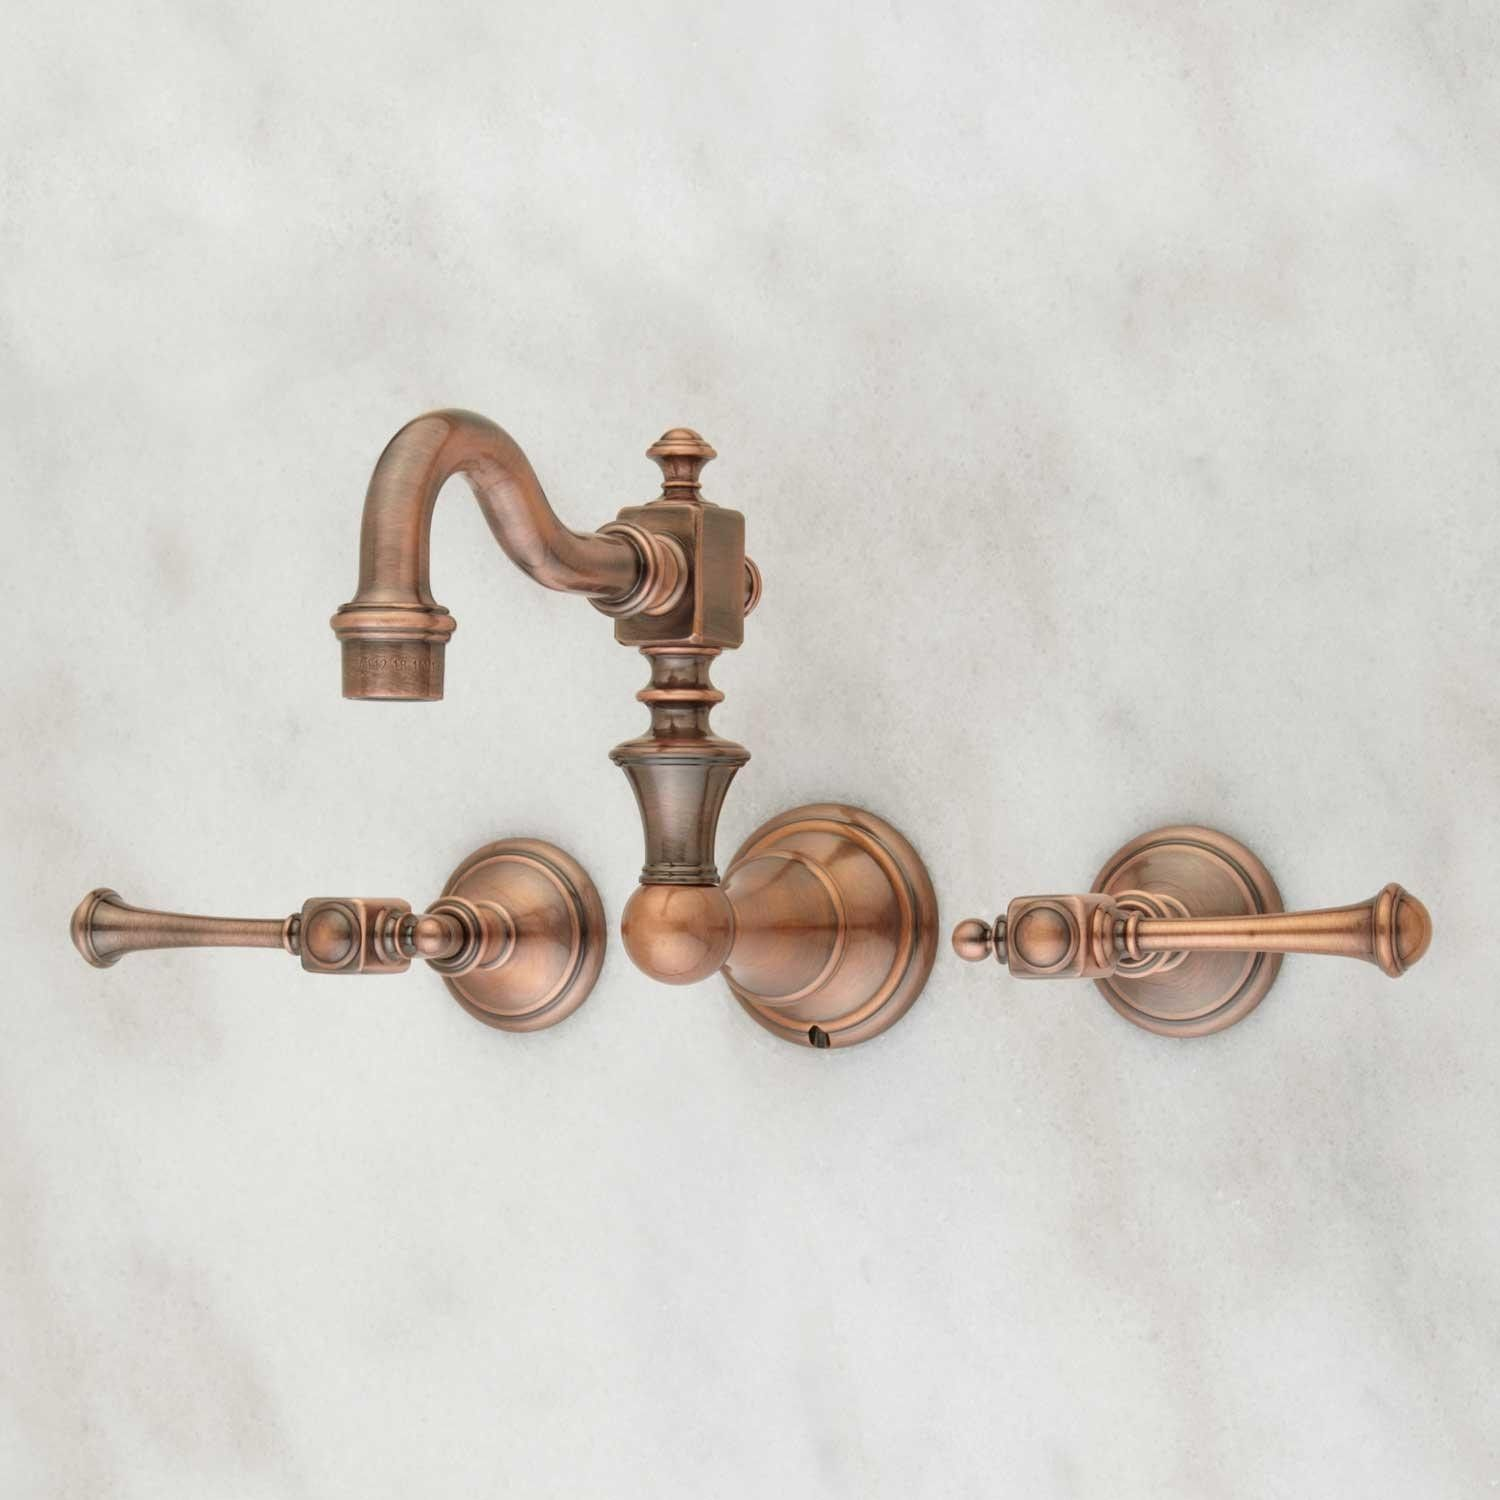 Vintage Wall Mount Bathroom Faucet Lever Handles Wall Mount